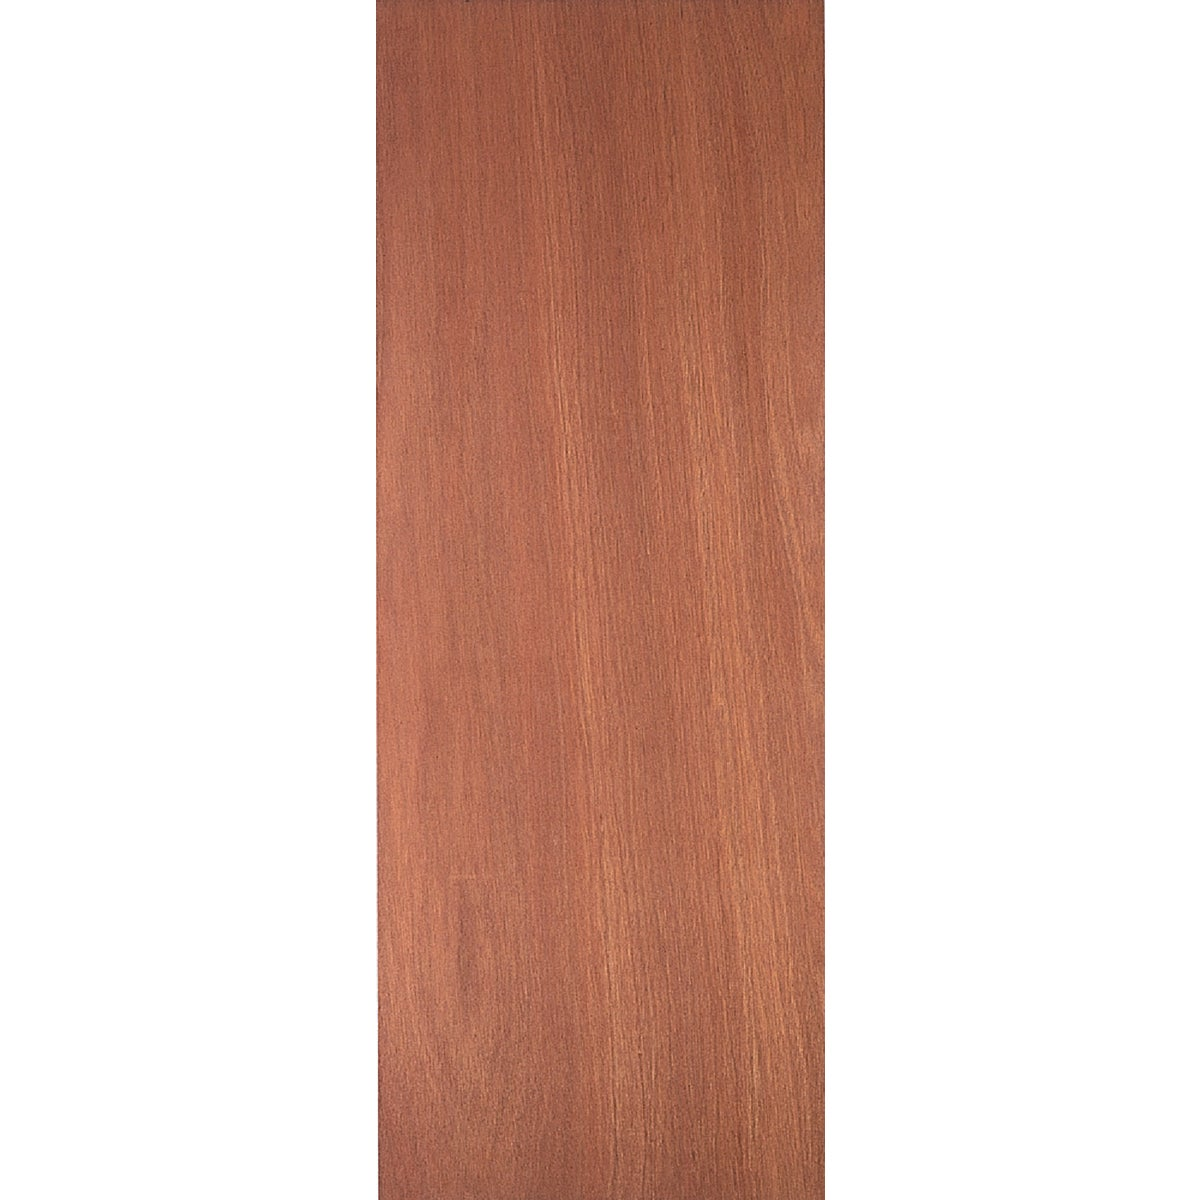 "2/0 1-3/8"" LAUAN HC DOOR -  by Masonite"